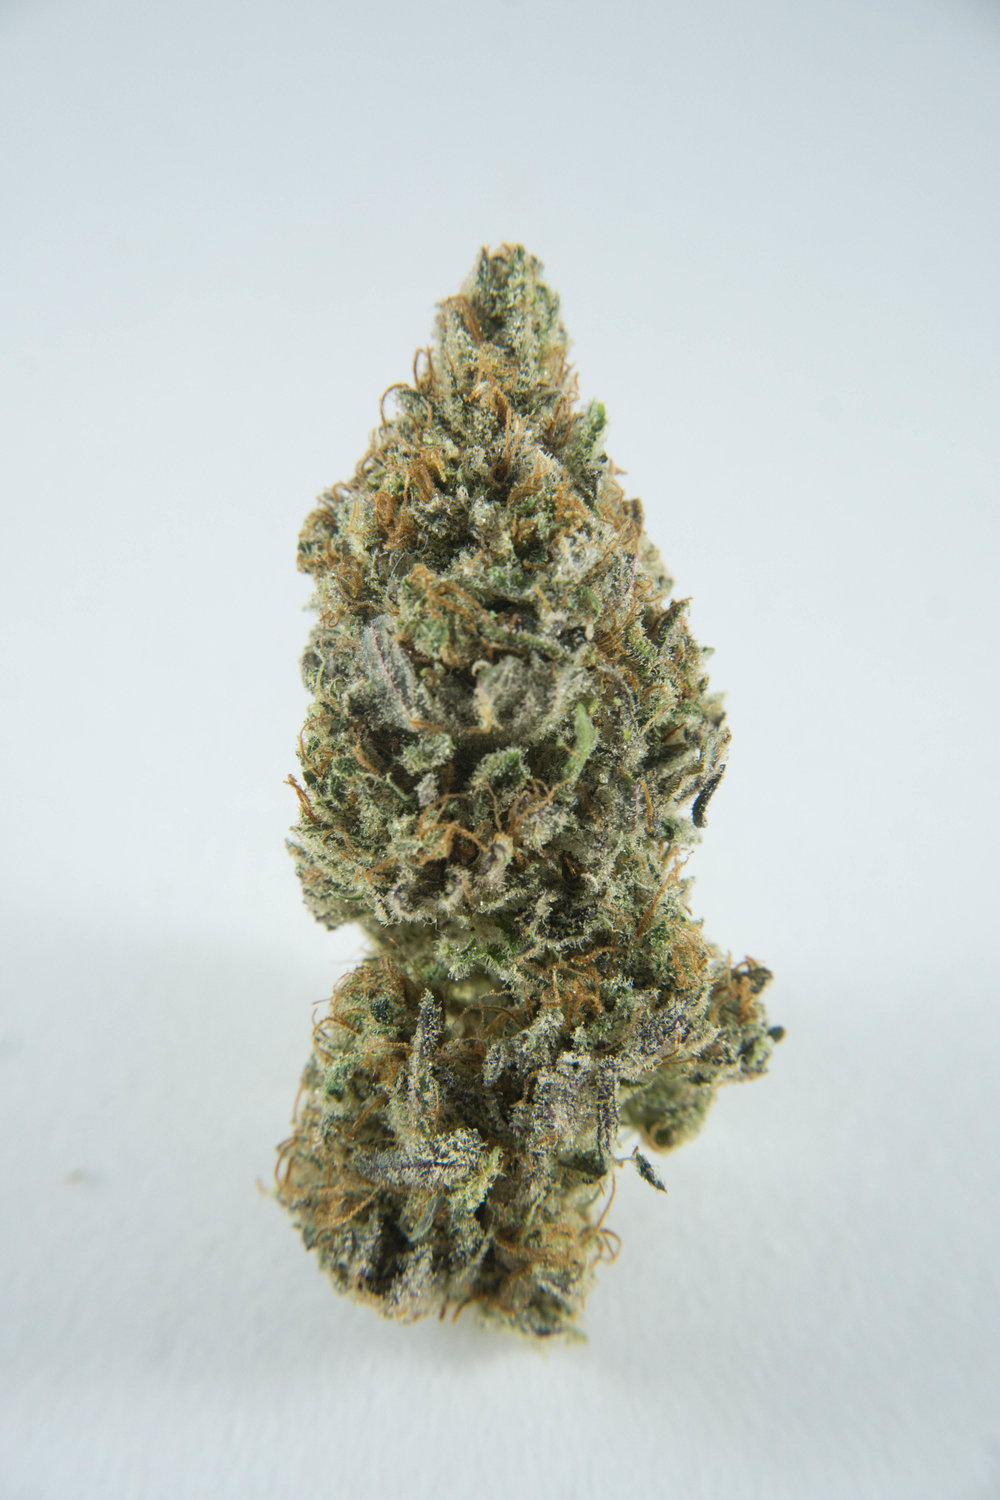 Hybrid (80% Indica, 20% Sativa).Crossed with Afghani Indica and Skunk #1.Tropical skunkiness. Very sweet, honeydew flavour and is extremely rich in CBD. Immediate relief for all your pain and worries. But you gotta fight to stay awake (or you know, it's great for insomnia). Get ready for the dozed off stares.